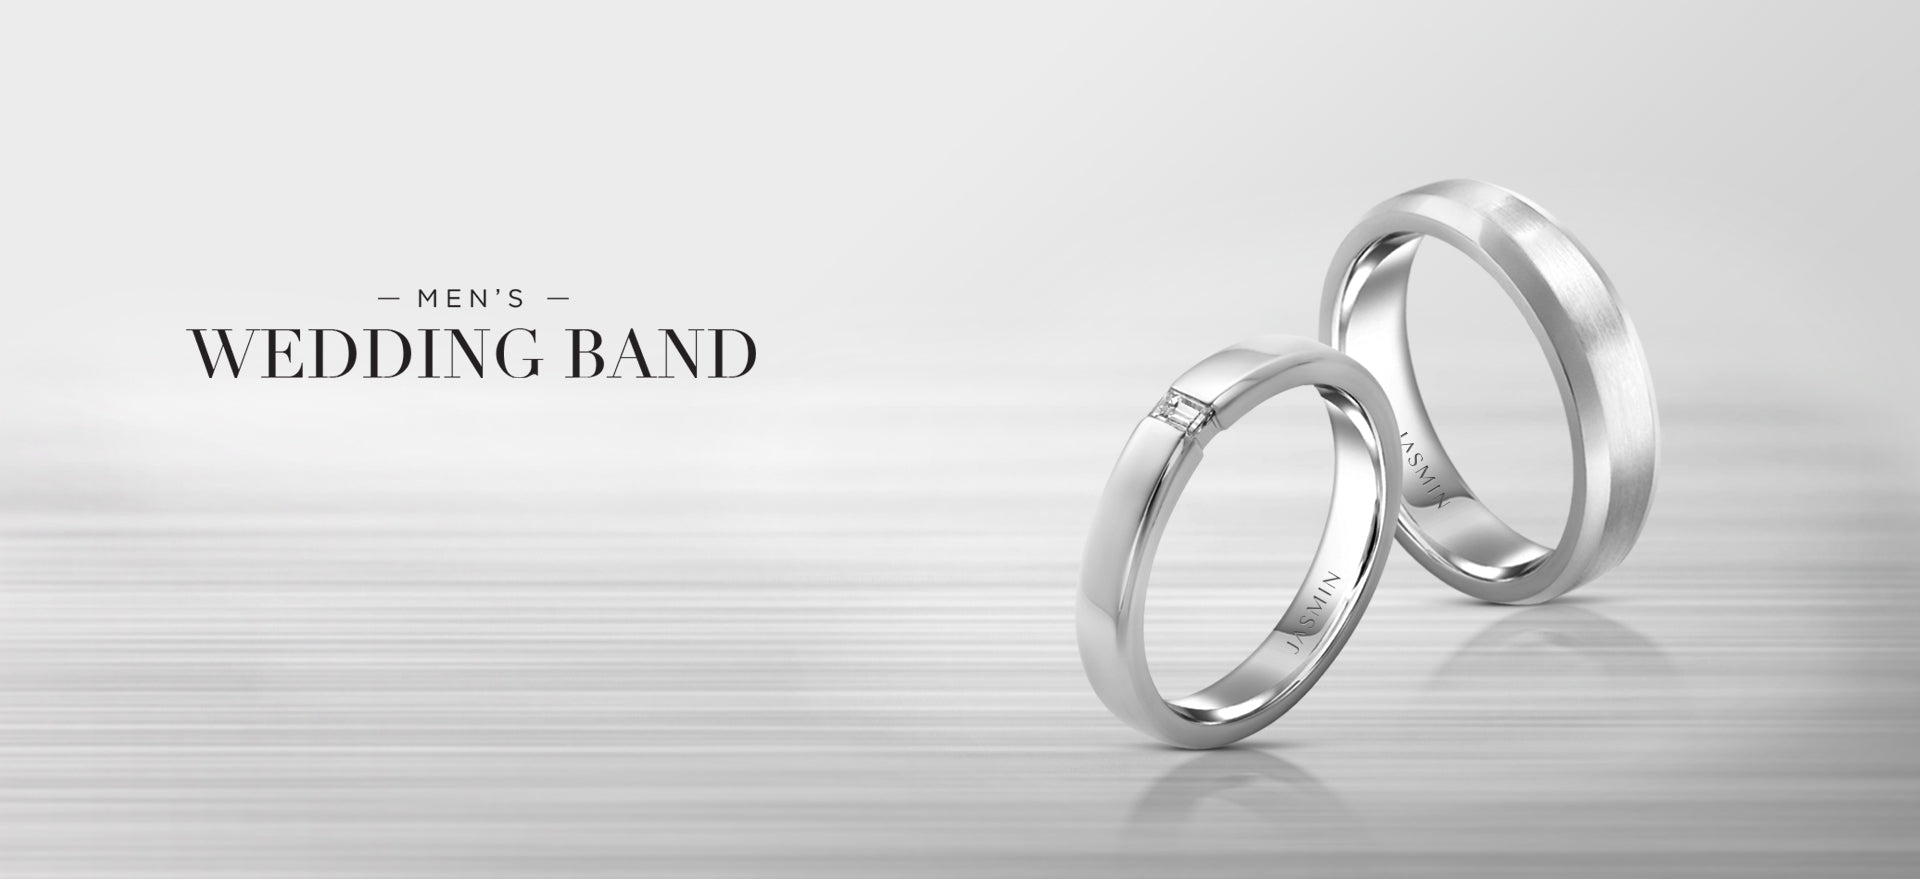 Men's wedding band banner